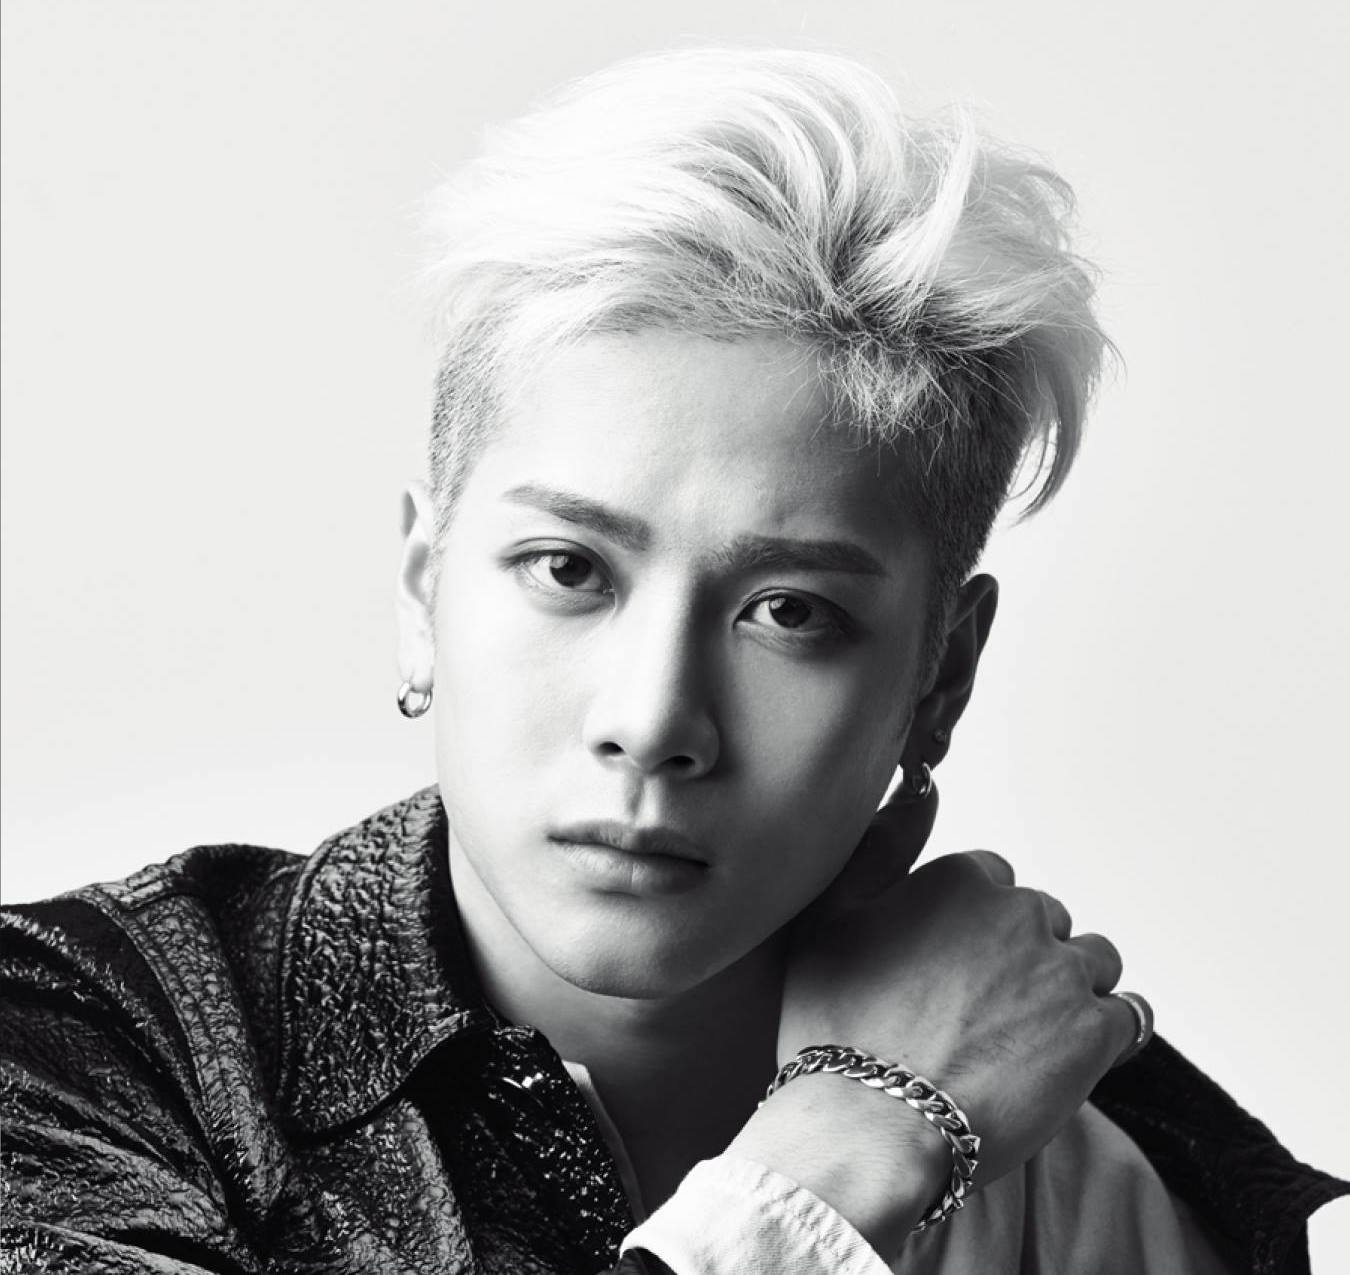 GOT7's Jackson Shares Update On How He's Doing After Accident